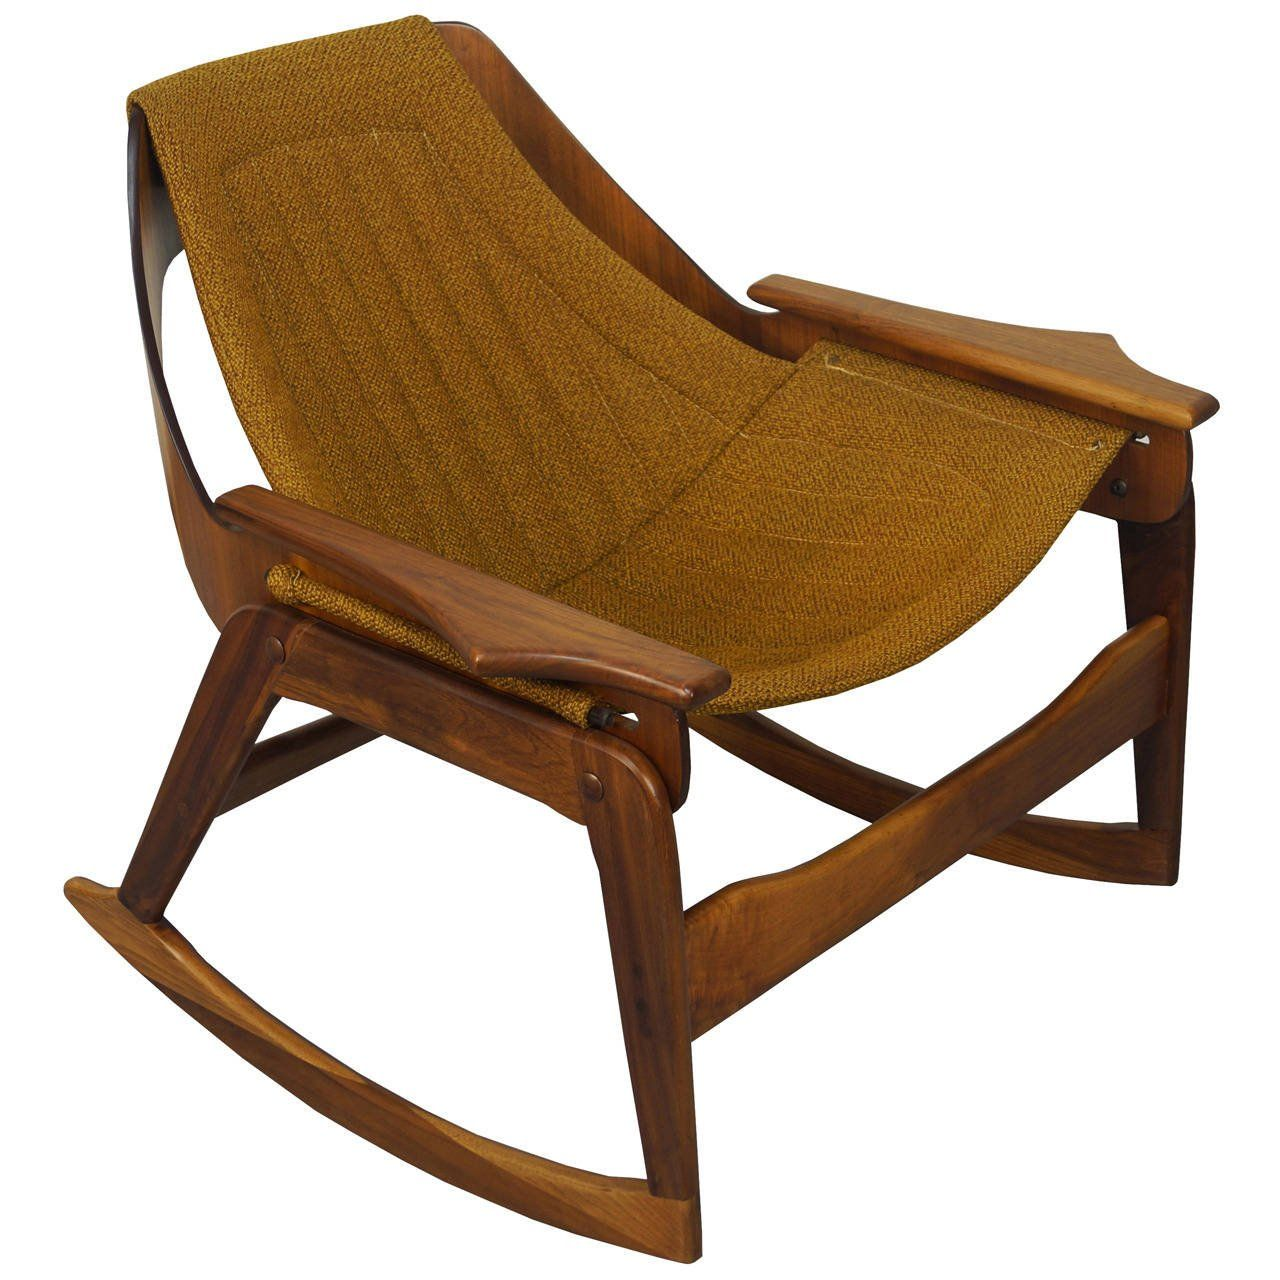 Strange Image Result For Low Slung Rocking Chair Sitz Outdoor Andrewgaddart Wooden Chair Designs For Living Room Andrewgaddartcom